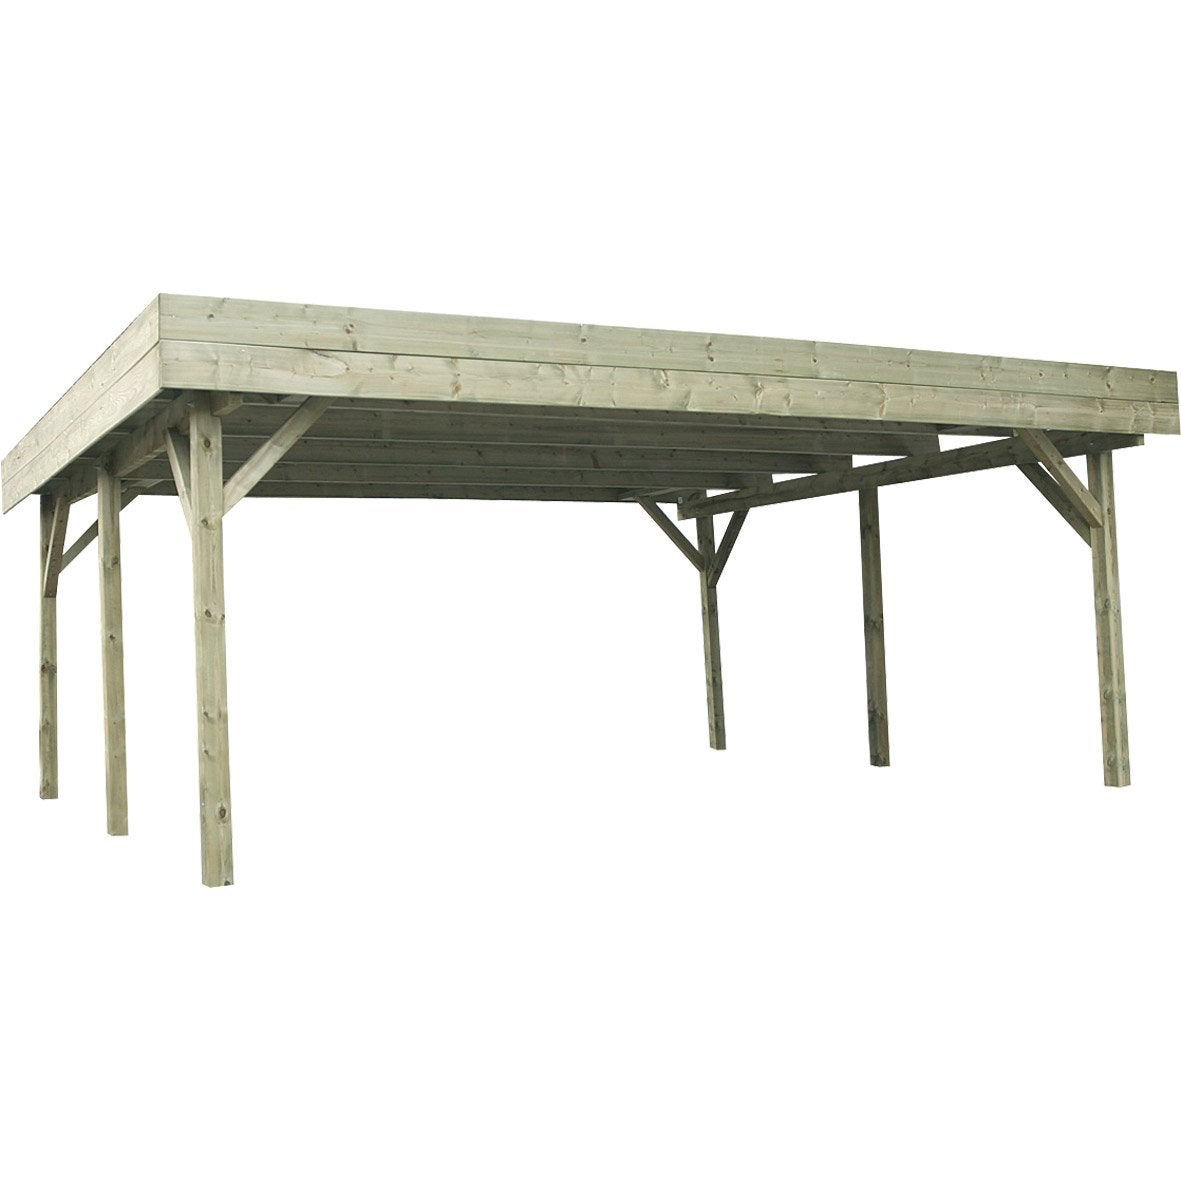 Garage En Bois Leroy Merlin : Carport en bois EVOLUTION, 31.05 m? Leroy Merlin